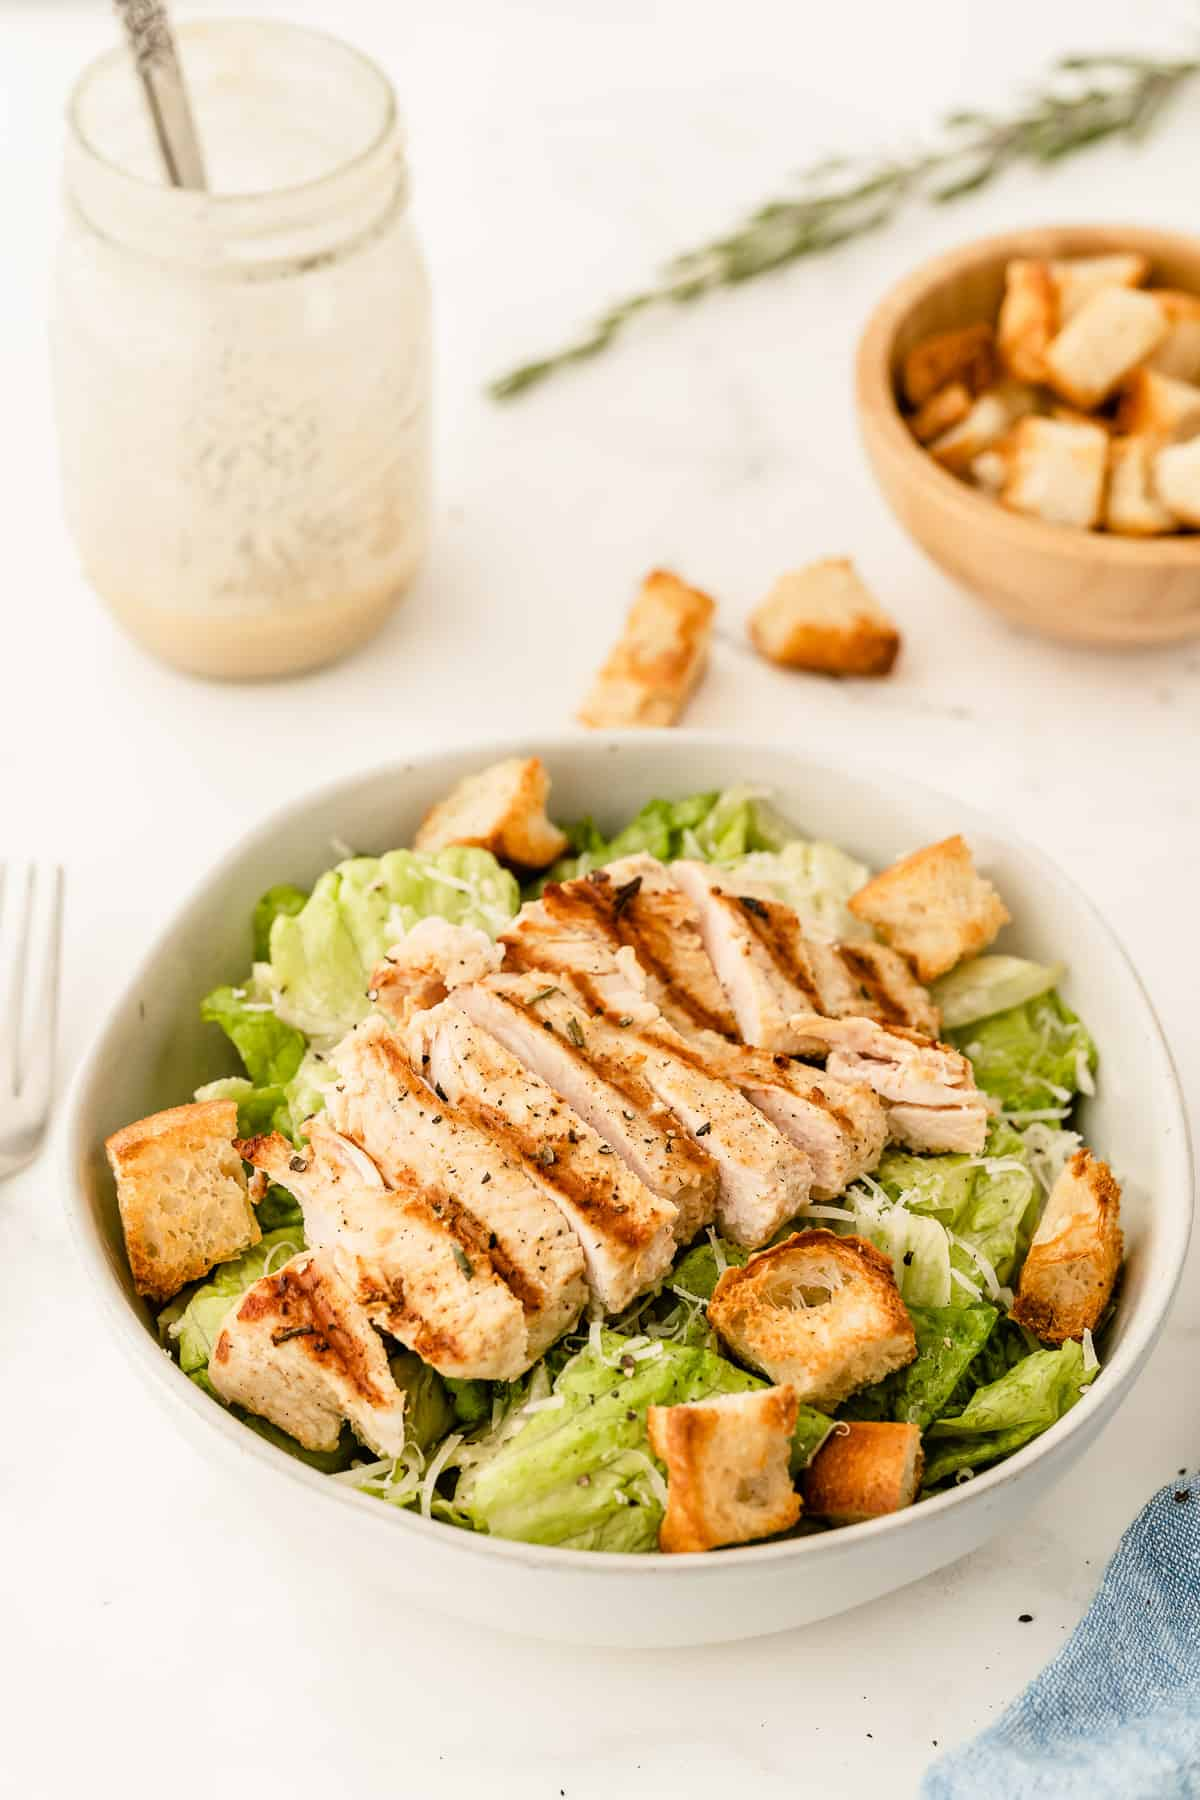 A bowl of chicken caesar salad with dressing in the background.